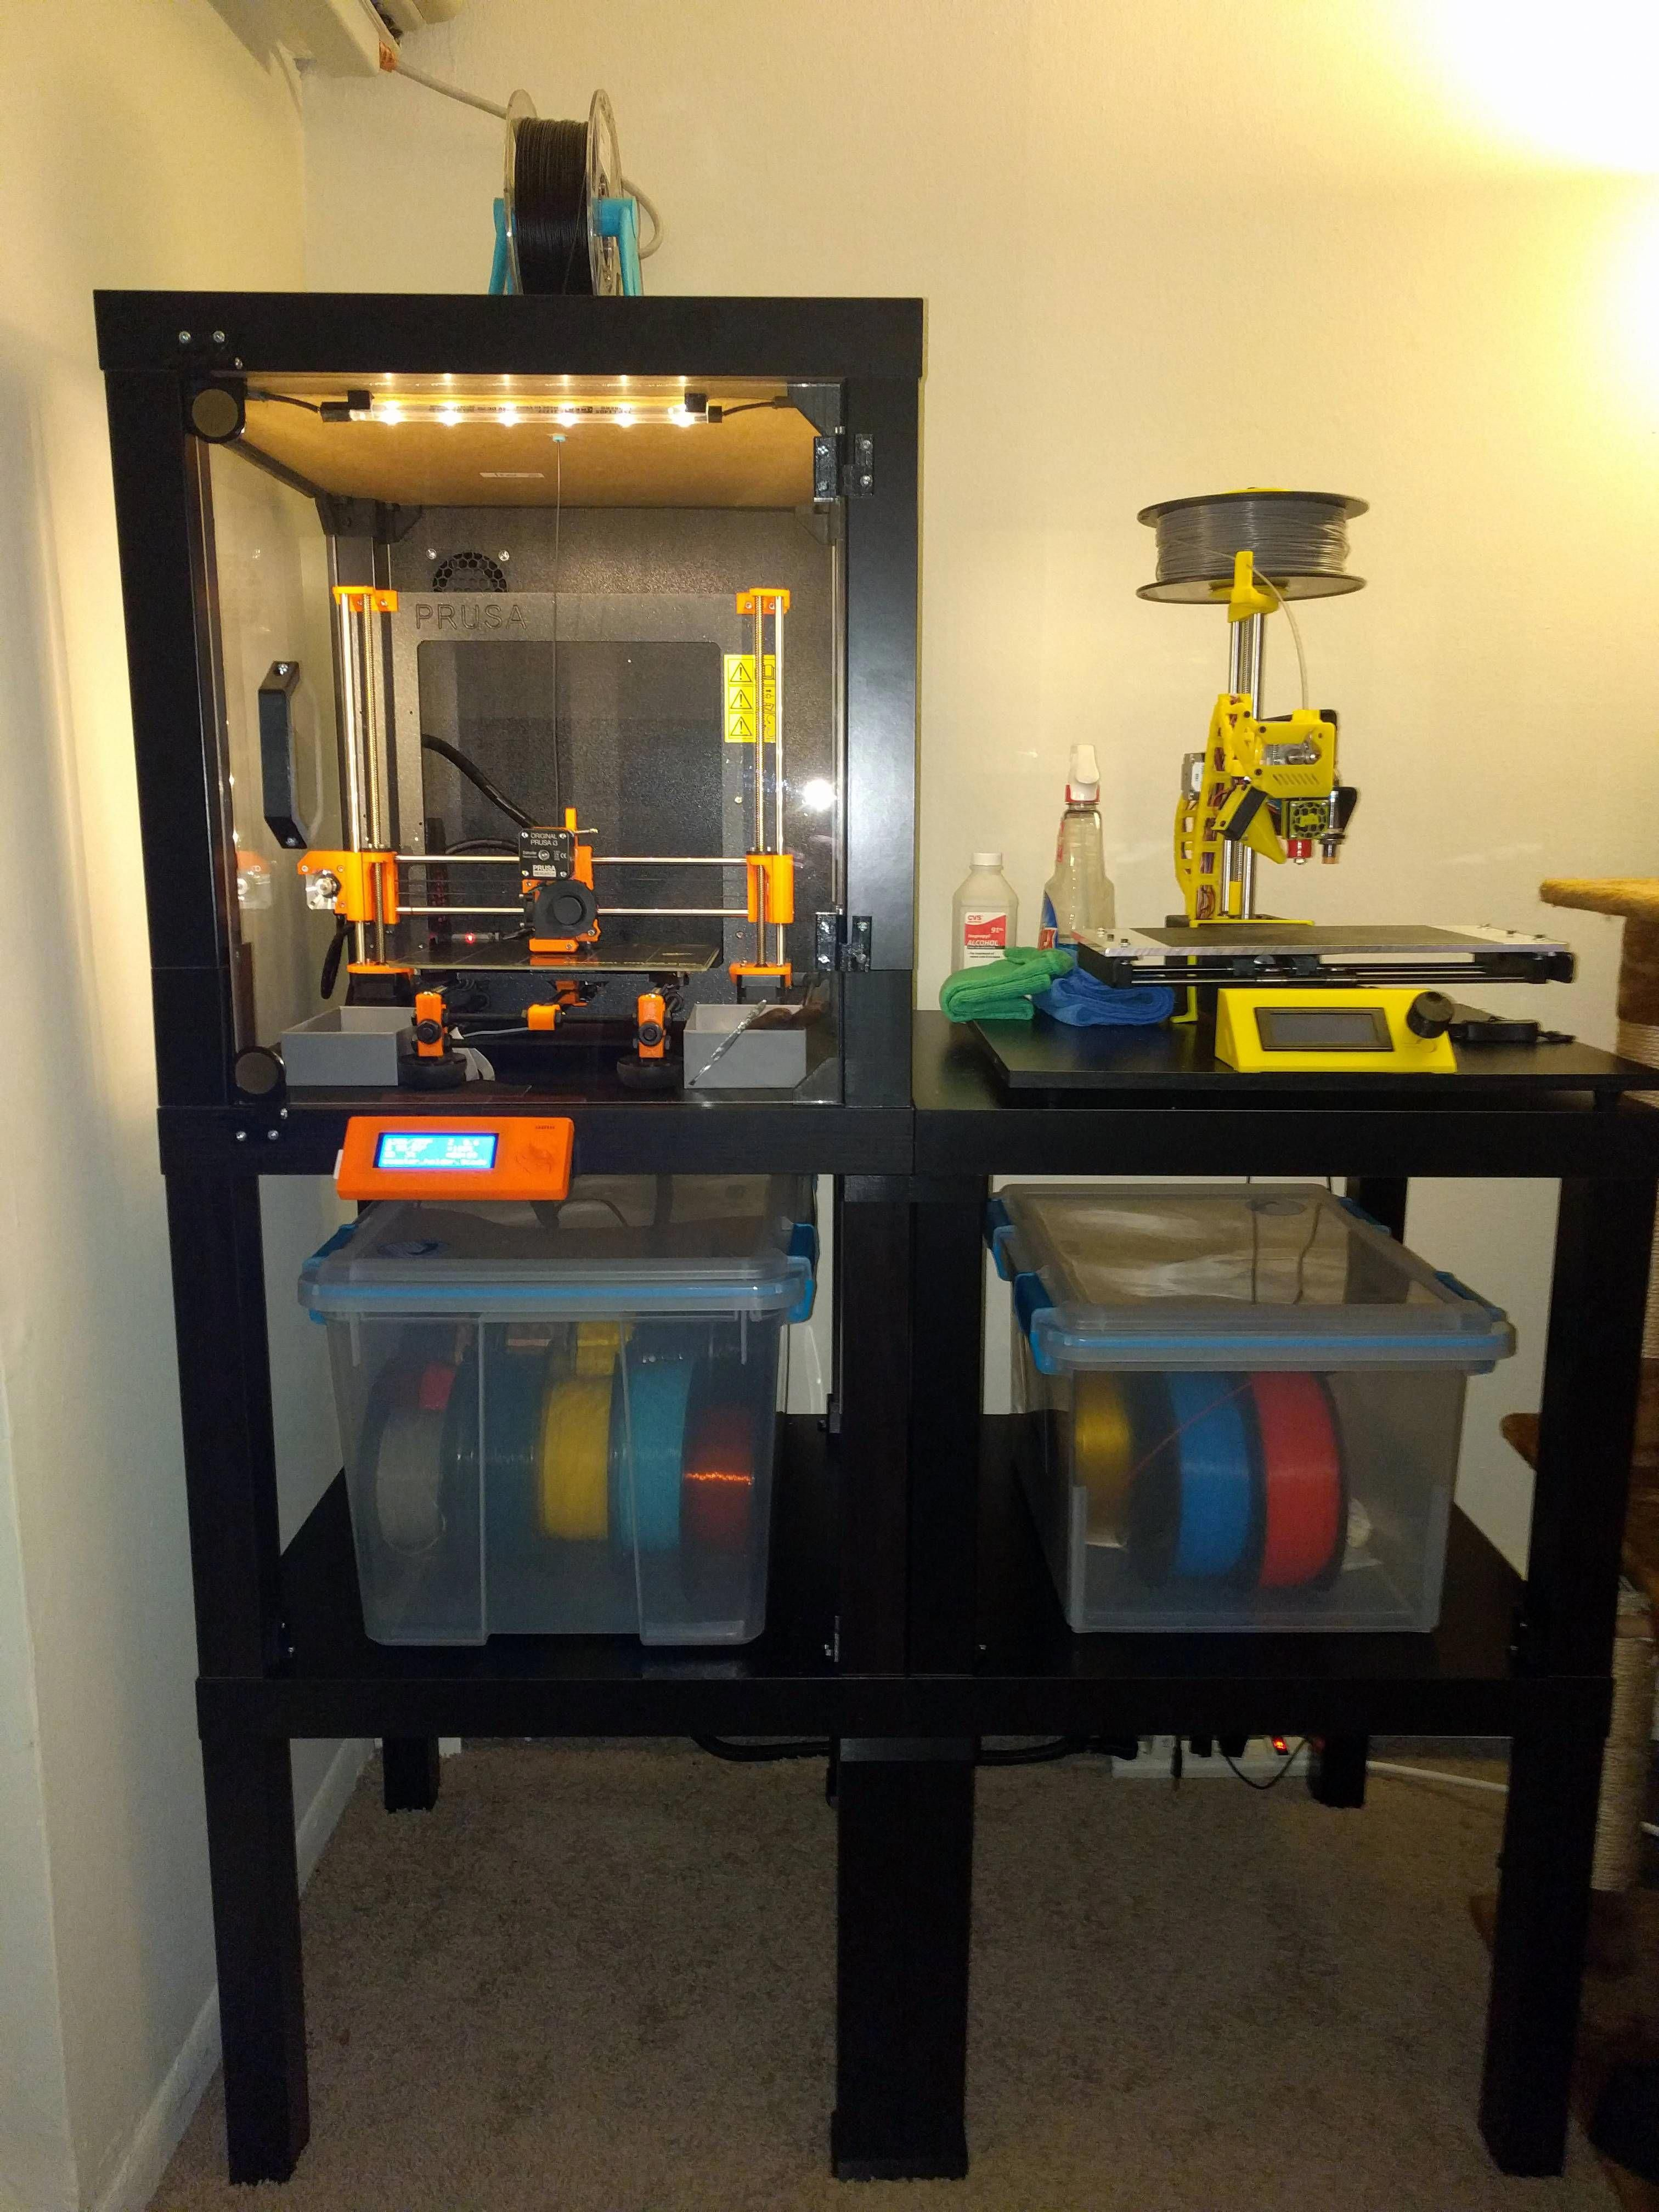 Ikea Lack enclosures are awesome. 3dprintingnews 3d